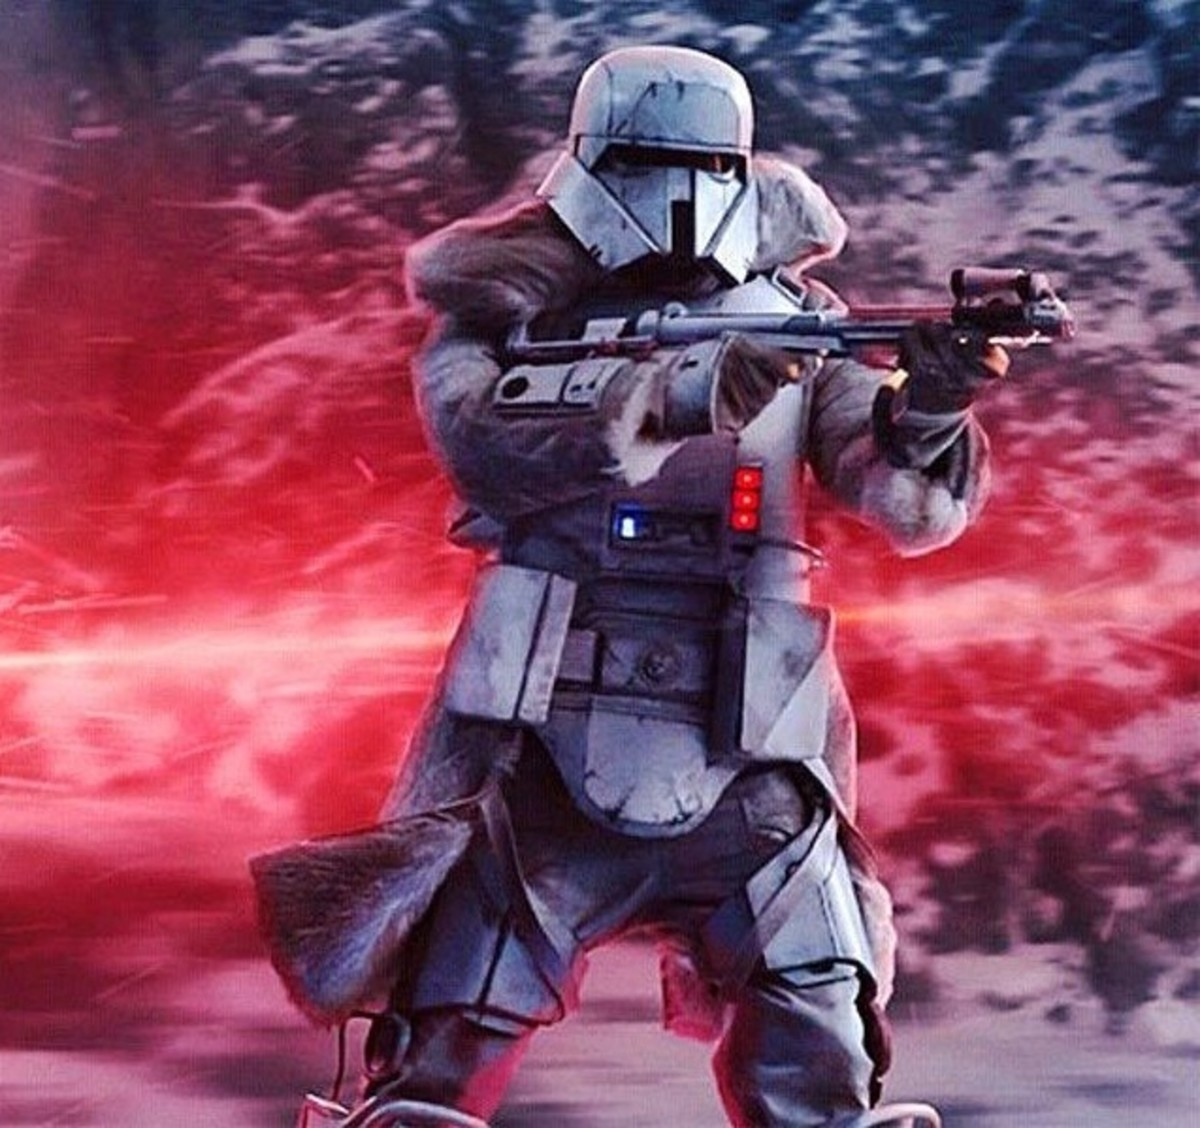 Range Trooper